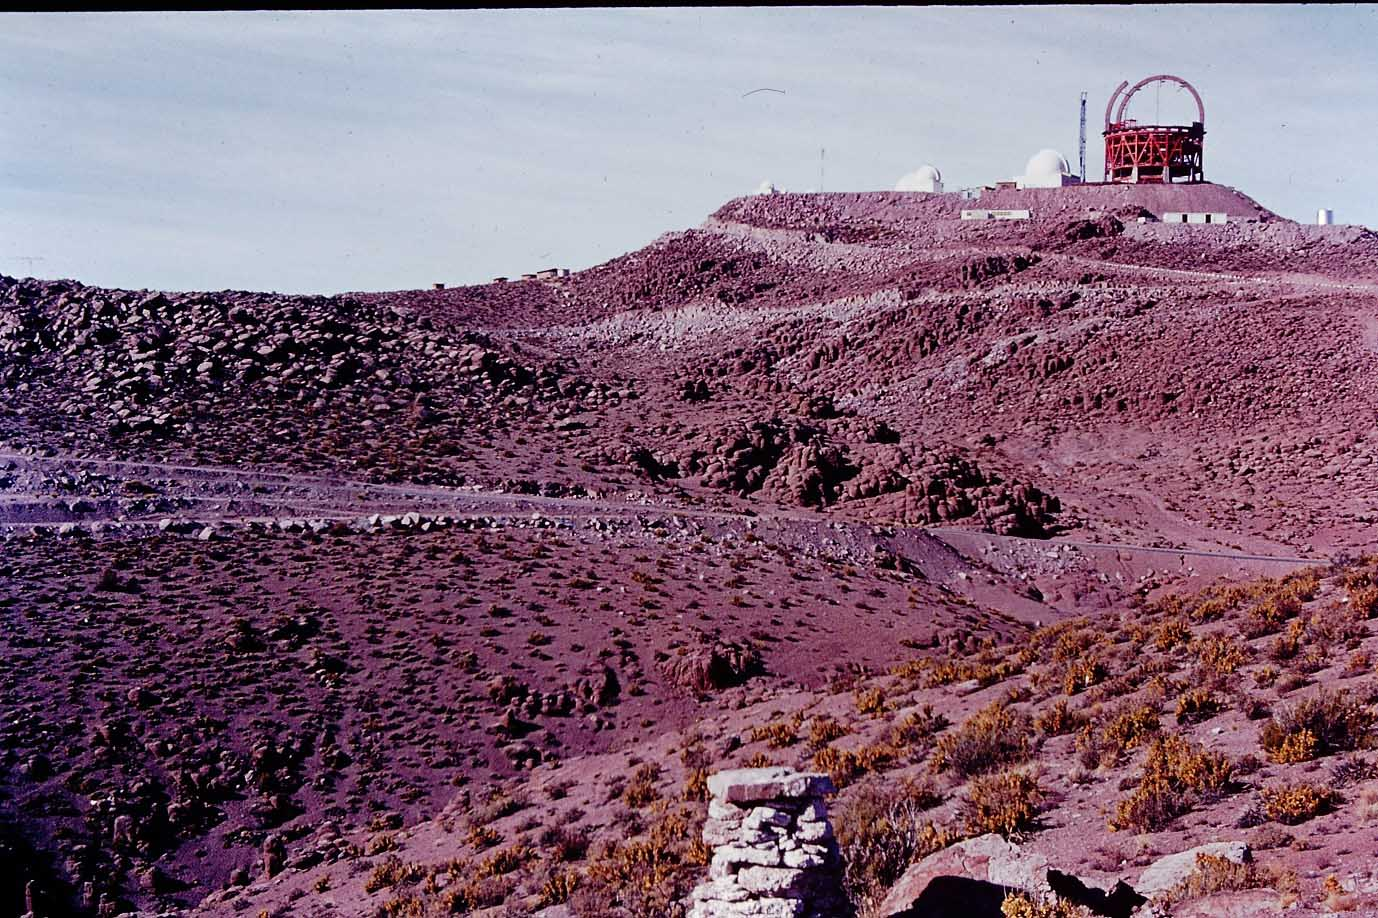 Enterreno - Fotos históricas de chile - fotos antiguas de Chile - Observatorio Cerro Tololo en 1975